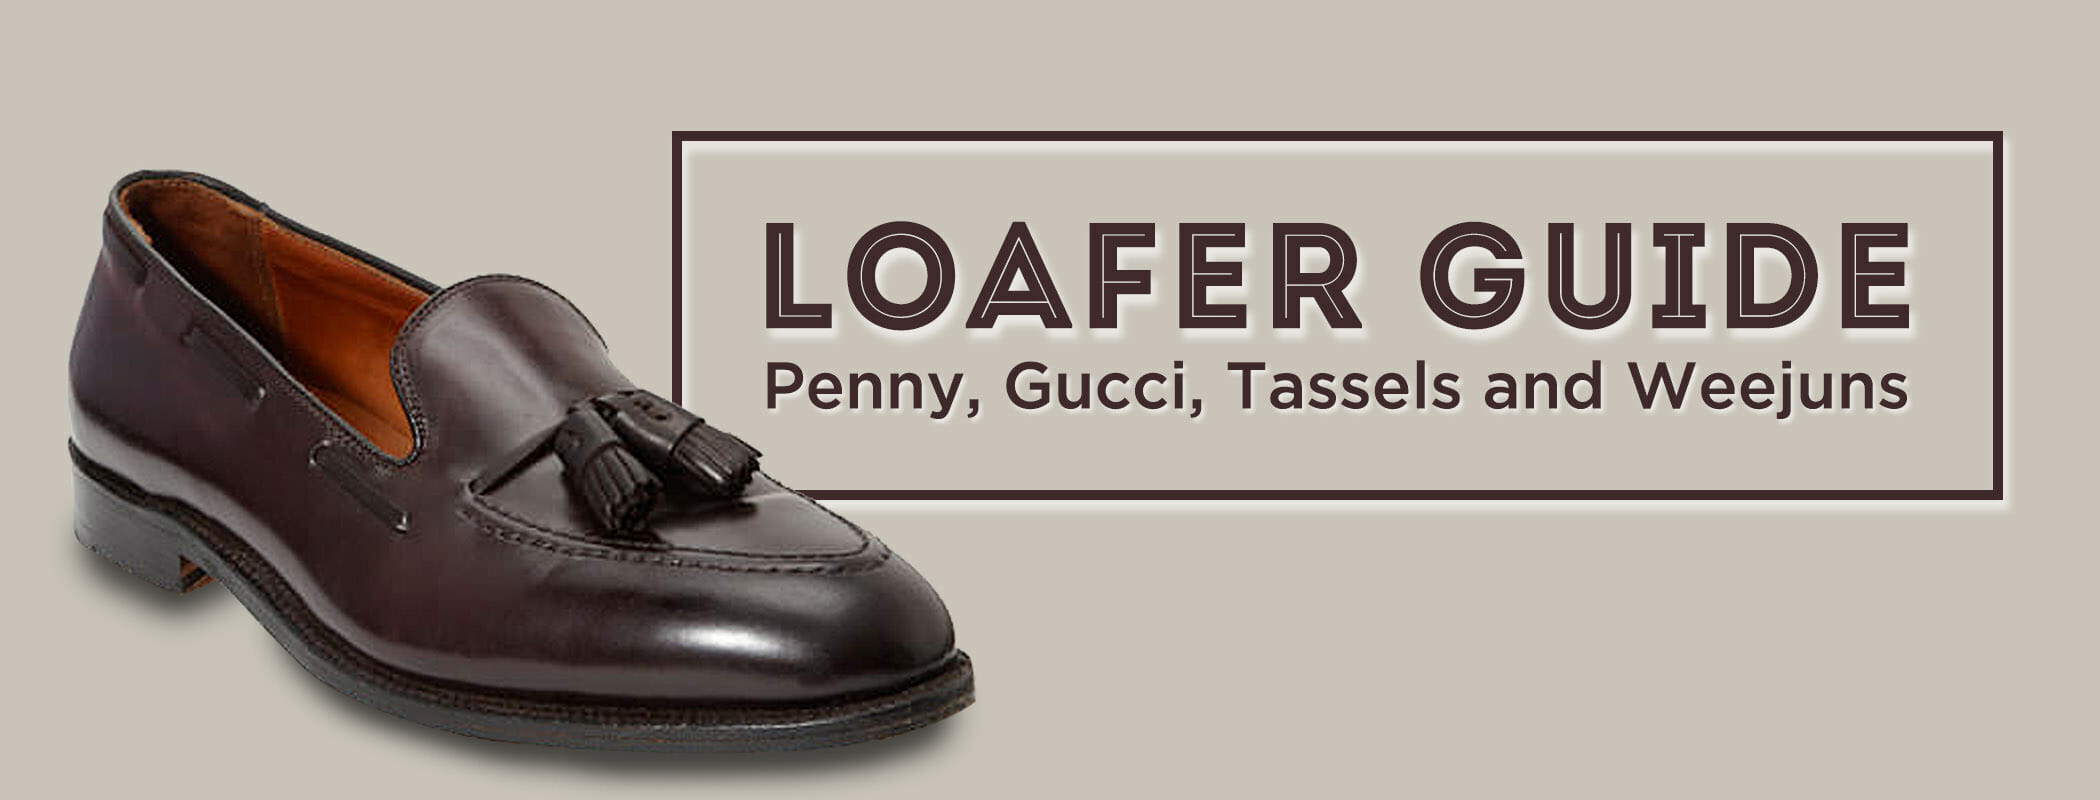 2bcb34382 Loafer Shoes Guide For Men - Penny Loafers, Tassels & Gucci ...